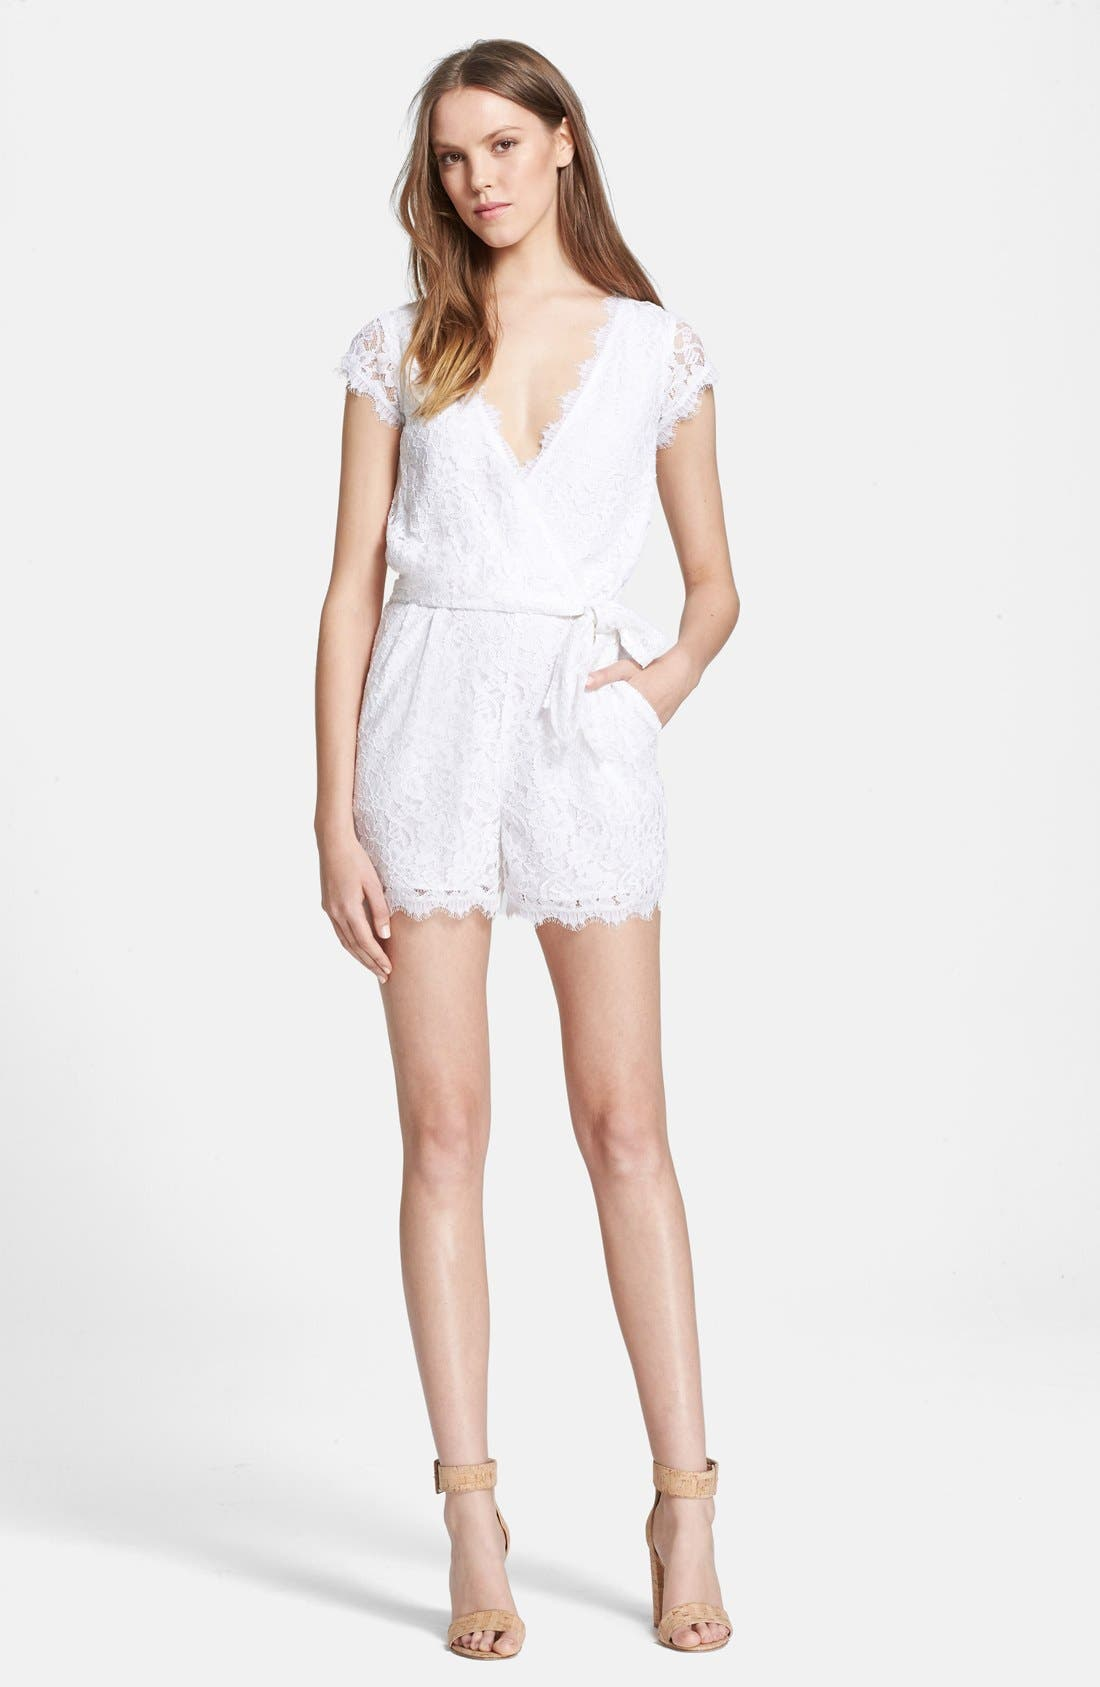 Alternate Image 1 Selected - Diane von Furstenberg 'Purdette' Lace Romper